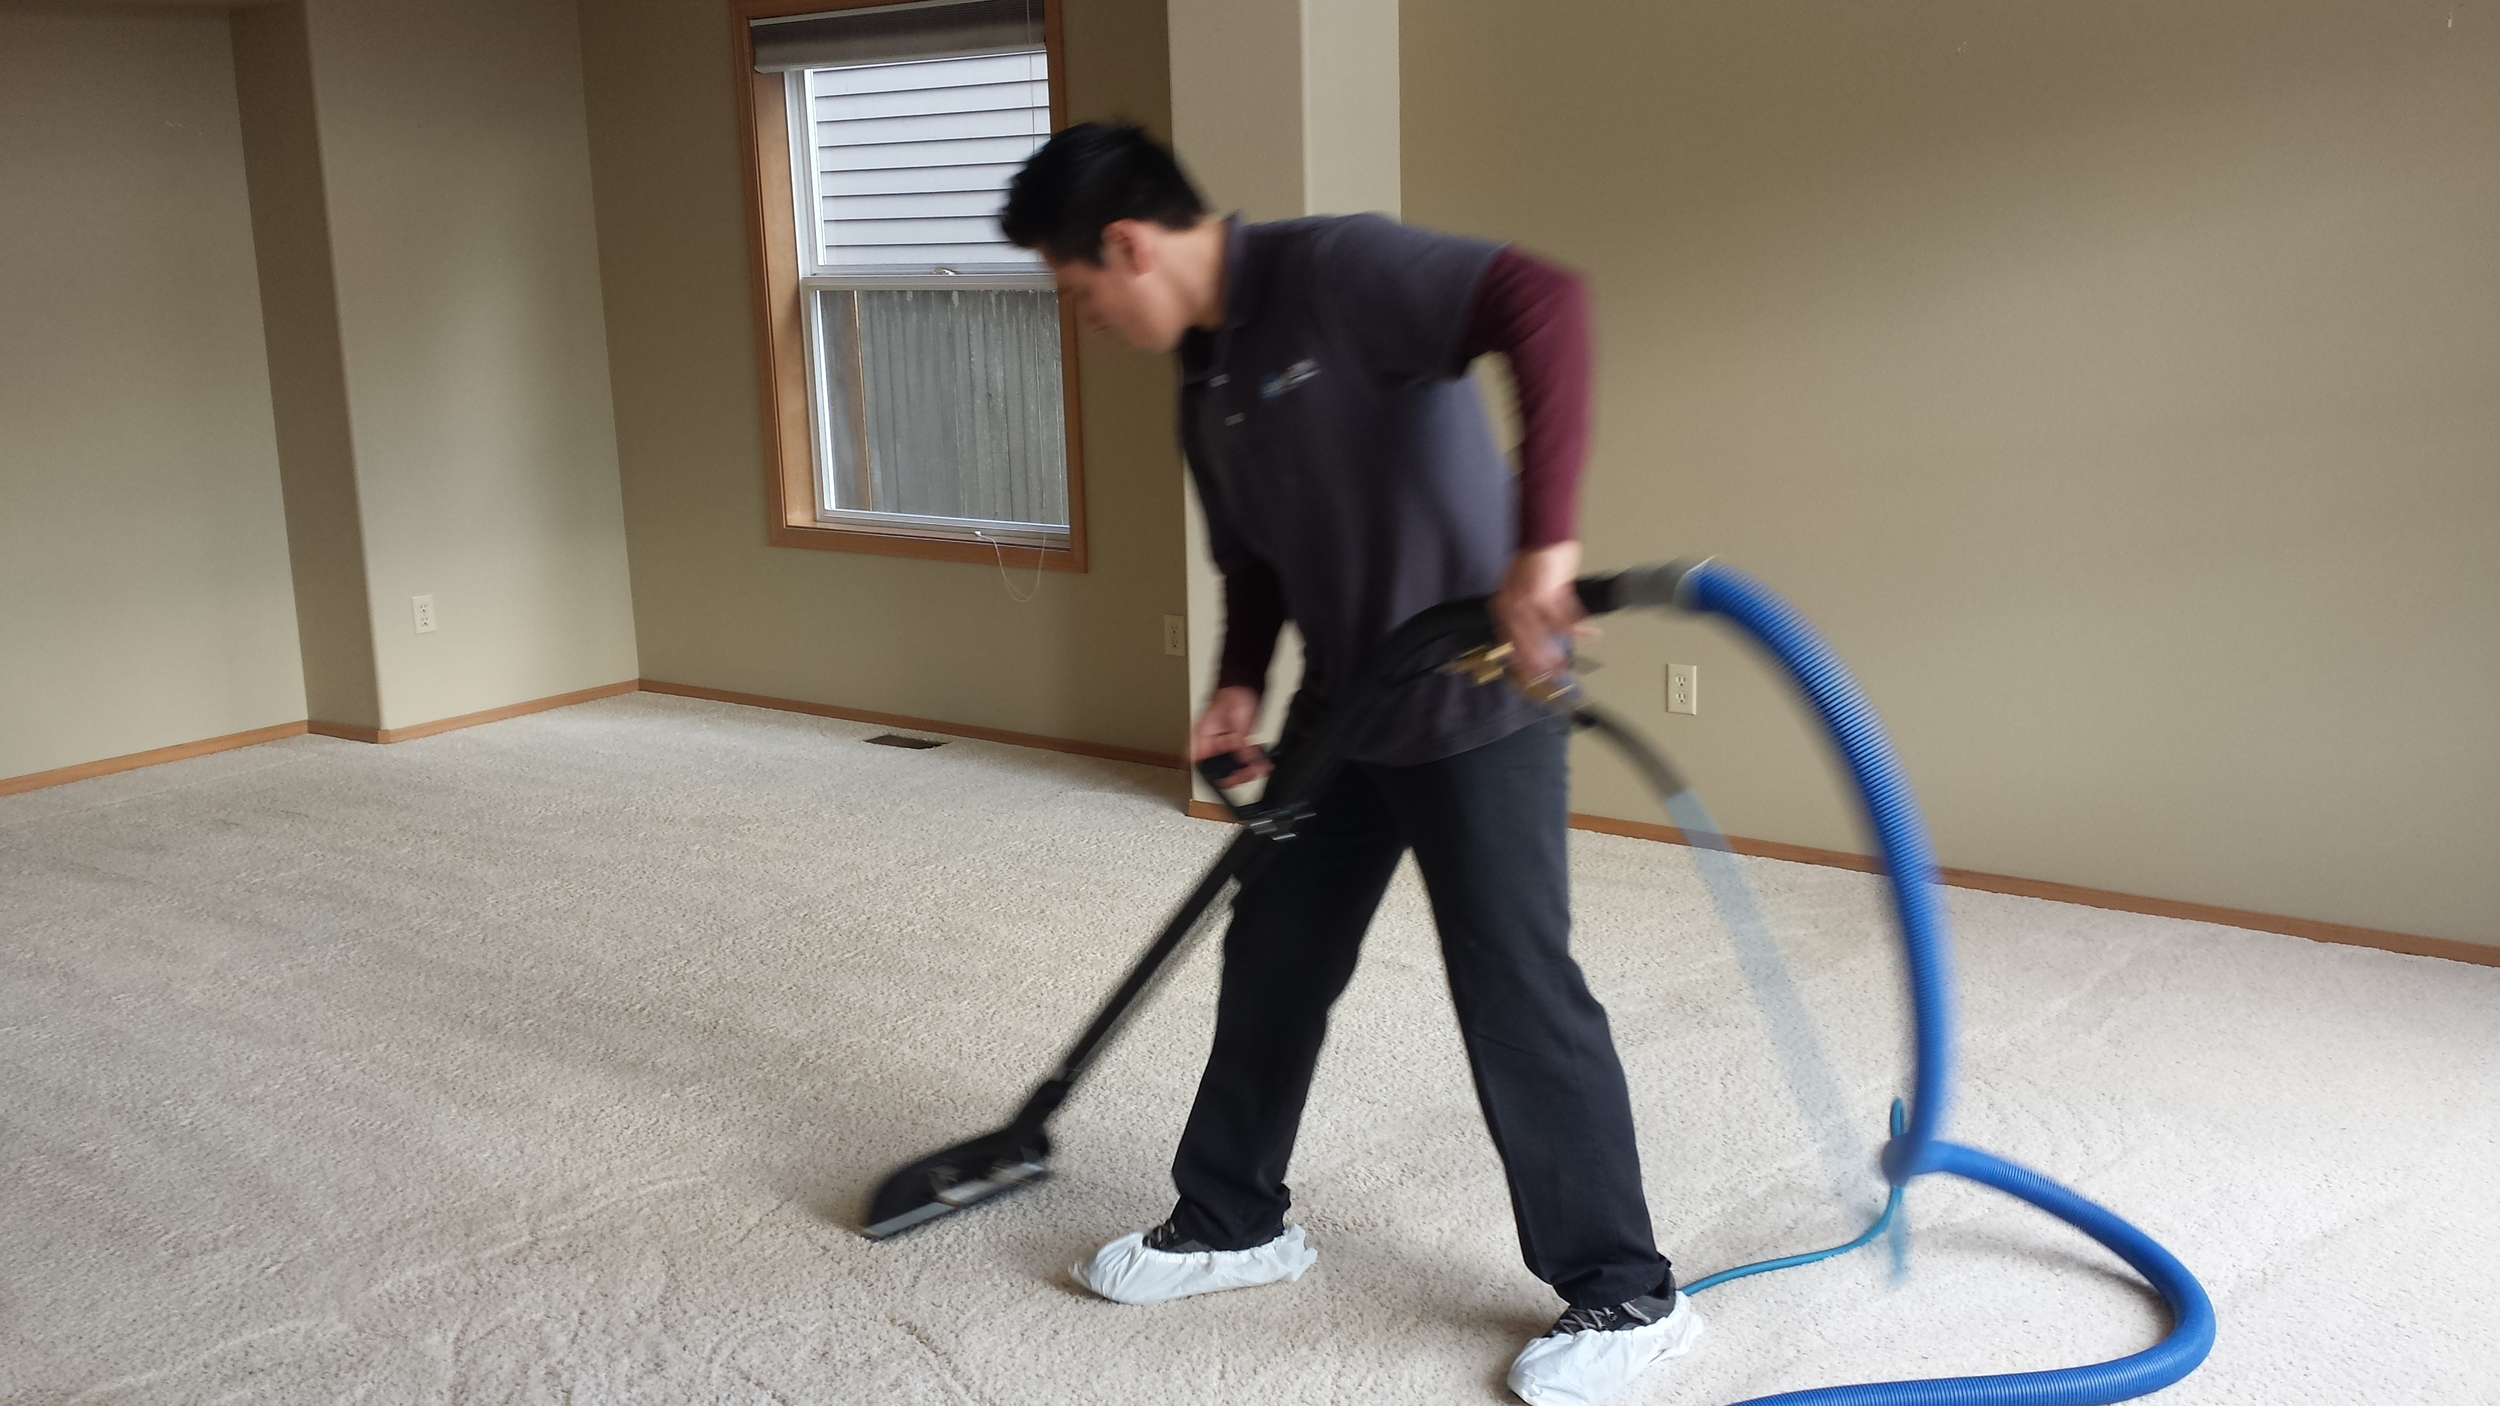 Professional carpet cleaner actively cleaning white carpet